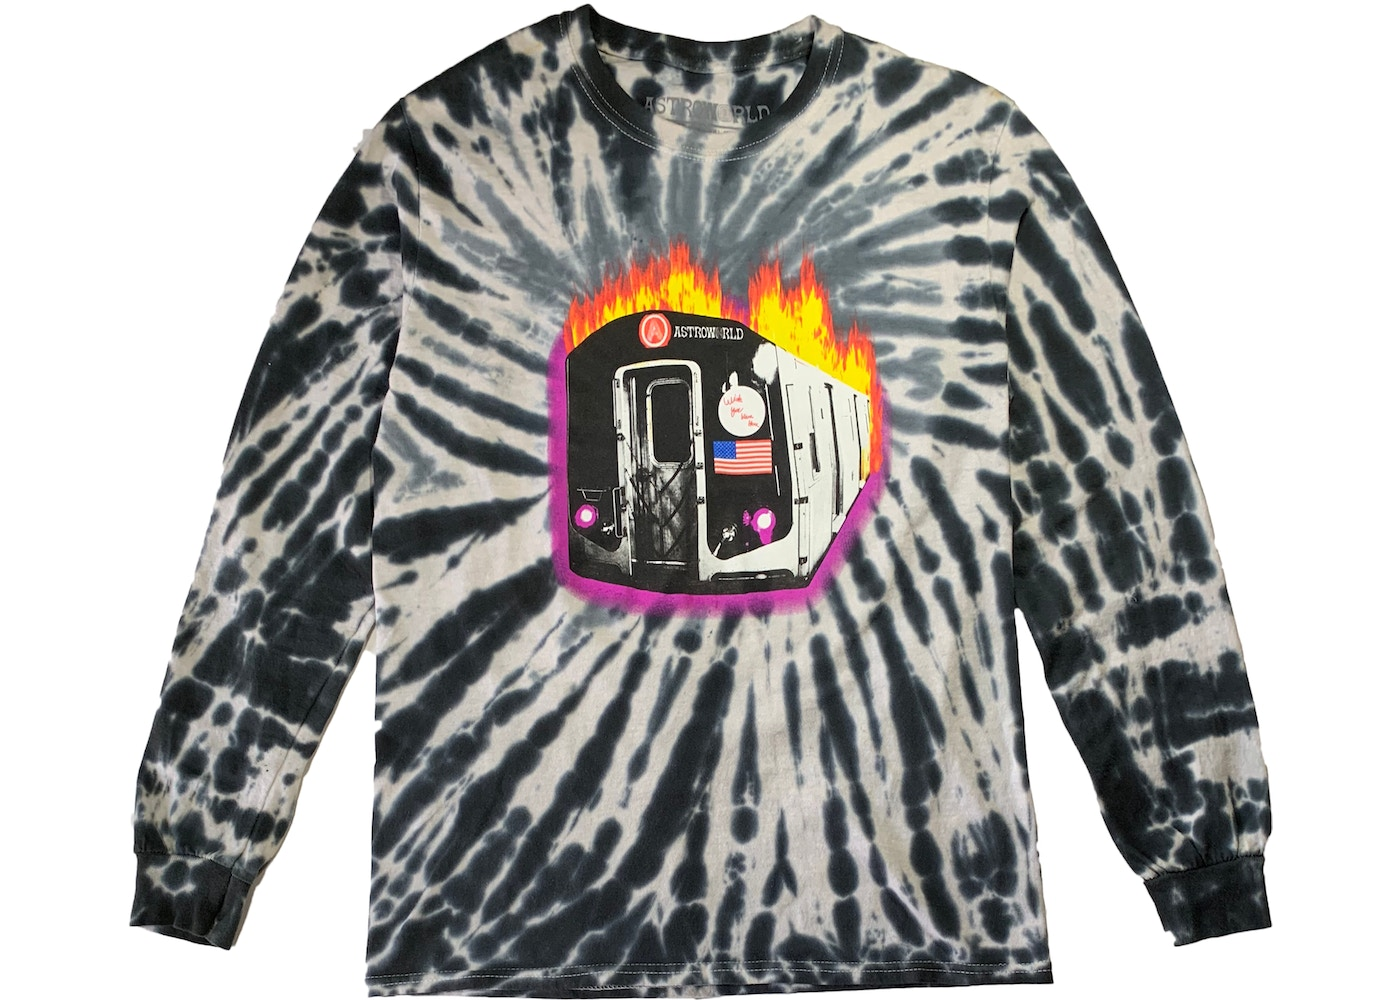 b5625e7973ce Travis Scott Astroworld Tour Burning Train Barclays L/S Tee Tie Dye ...